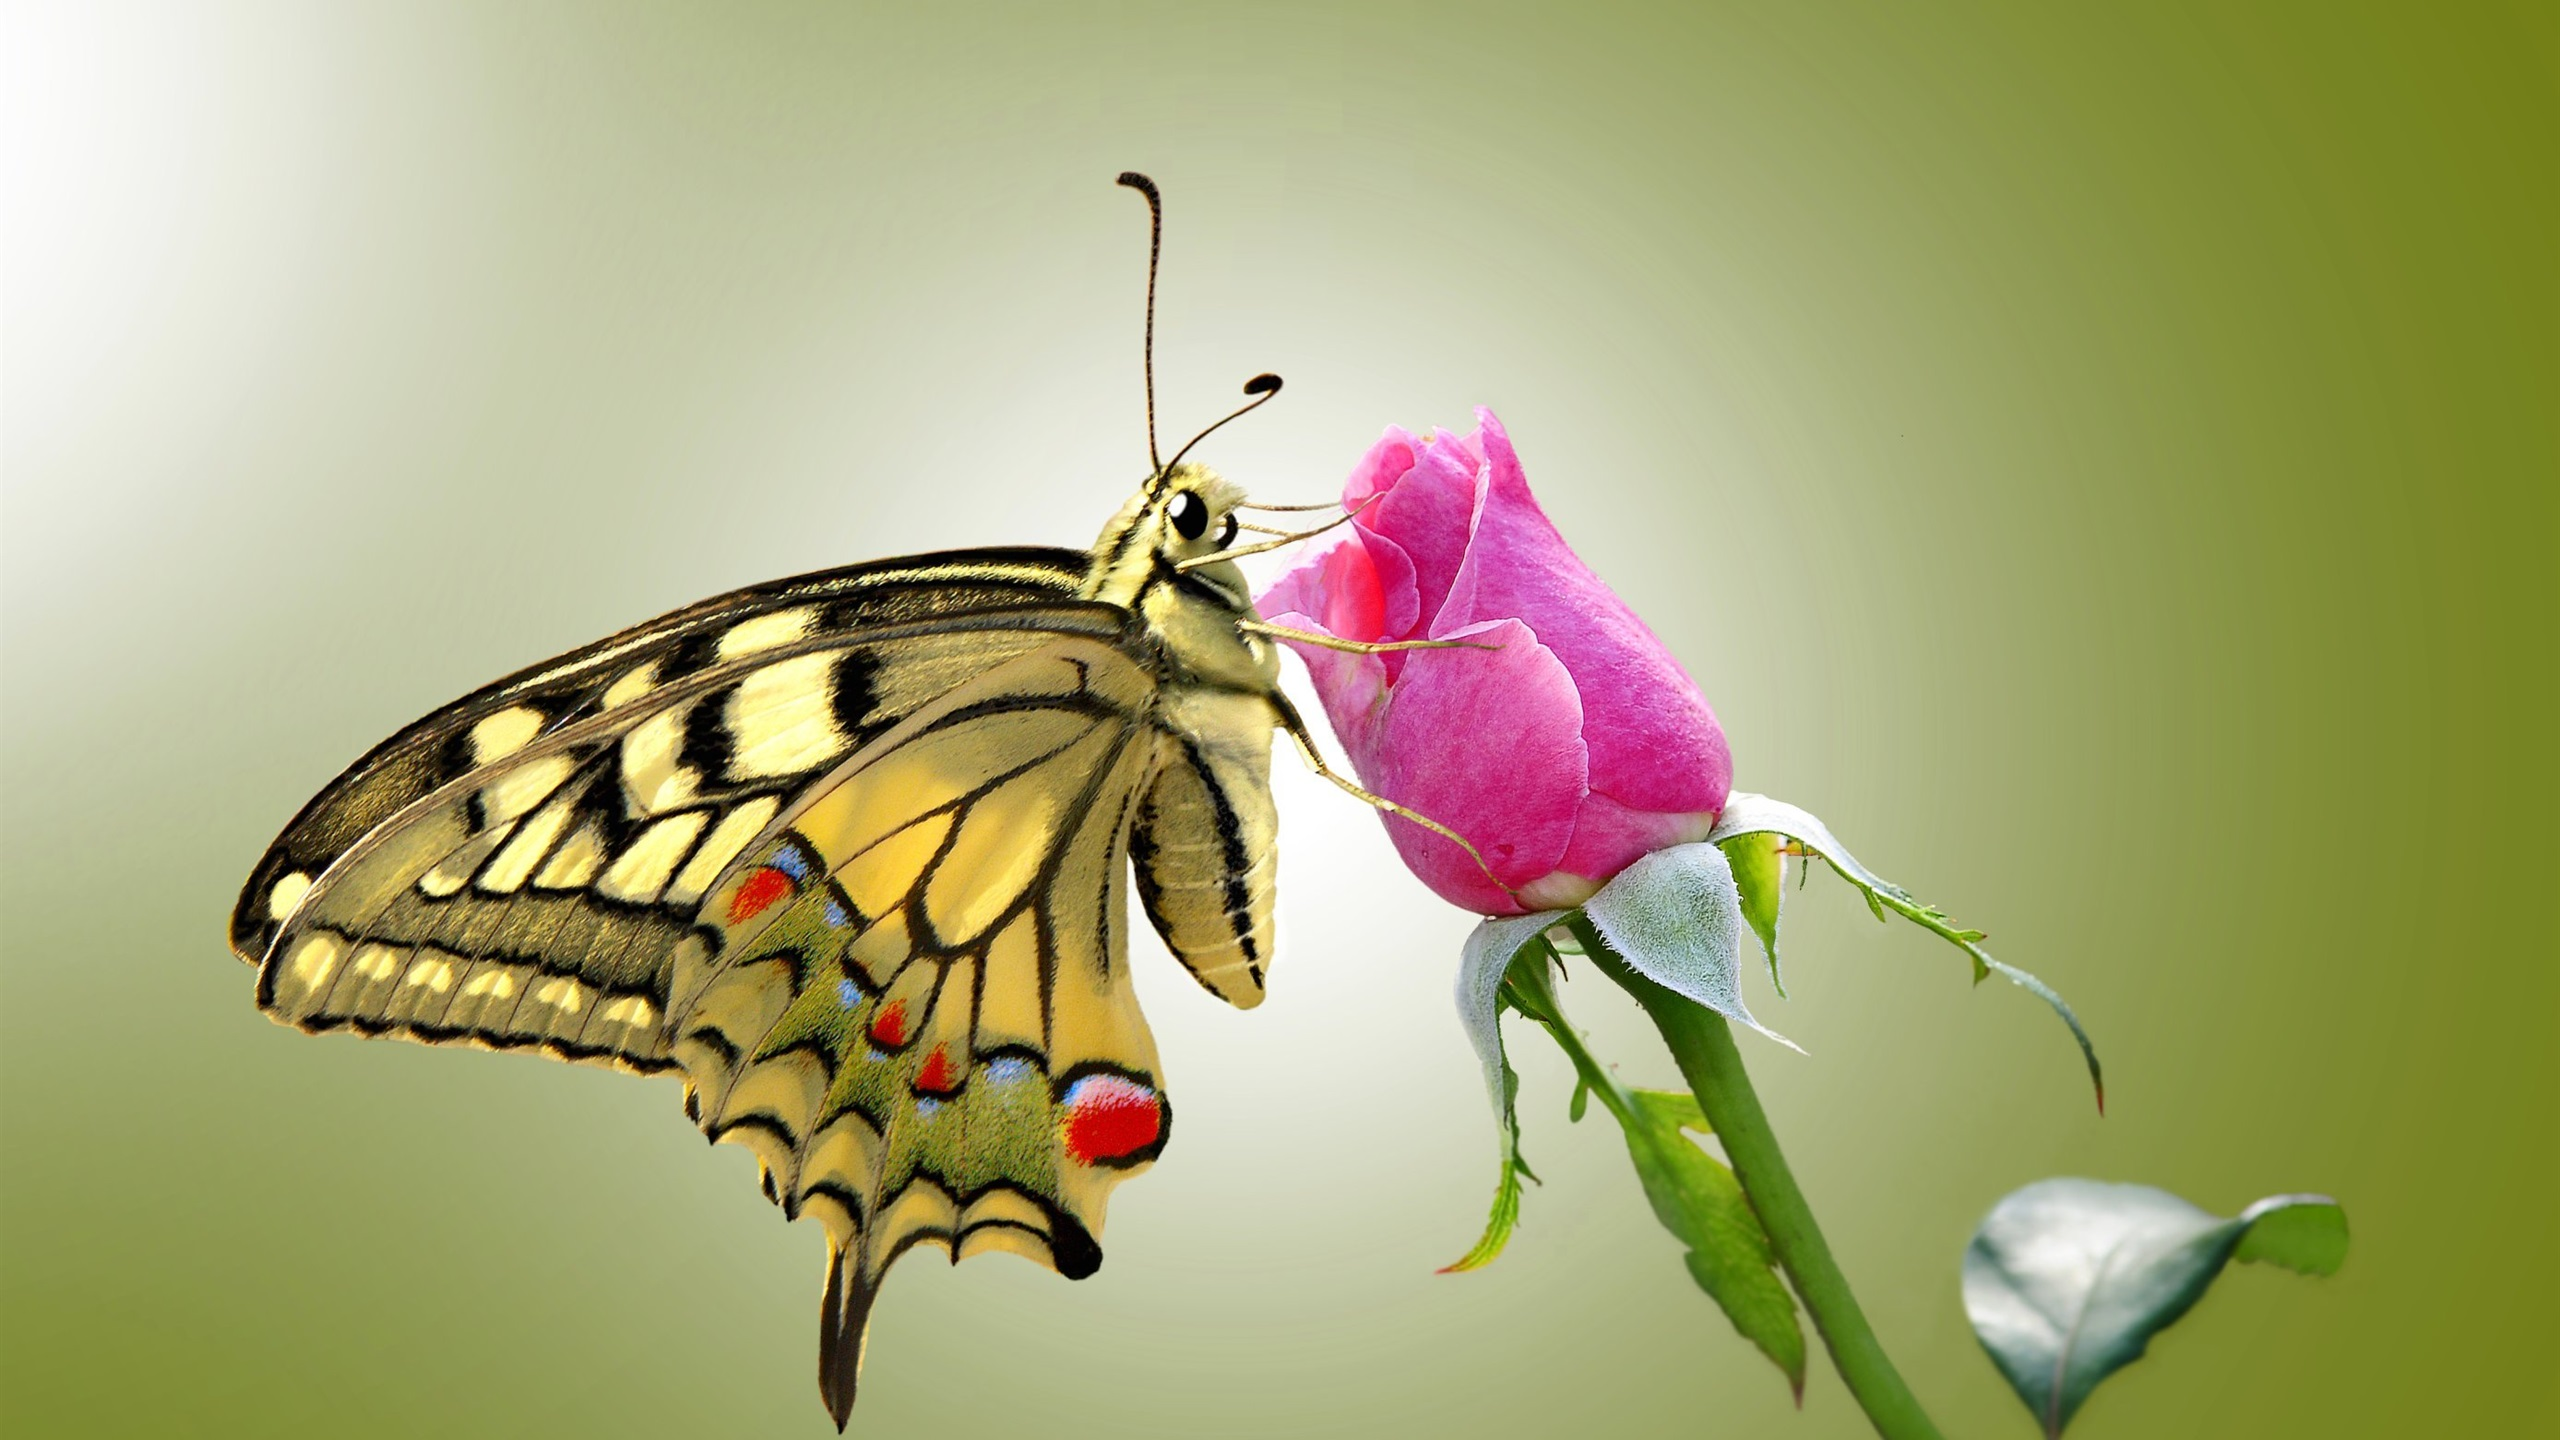 Butterfly and pink rose wallpaper 2560x1440 QHD